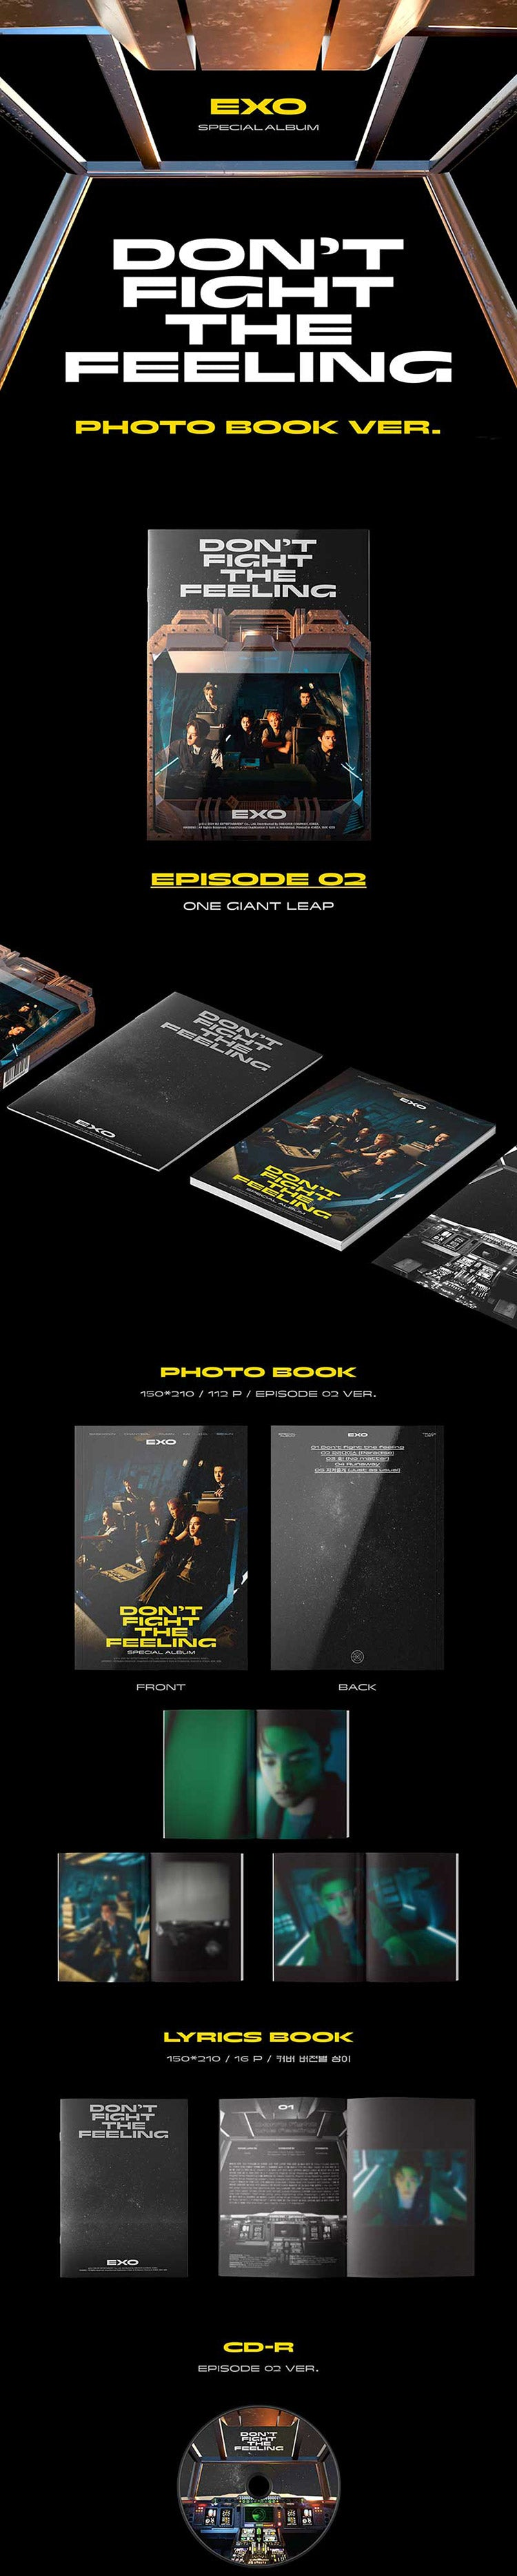 EXO - Special Album [Don't Fight The Feeling] Photo Book Ver.2